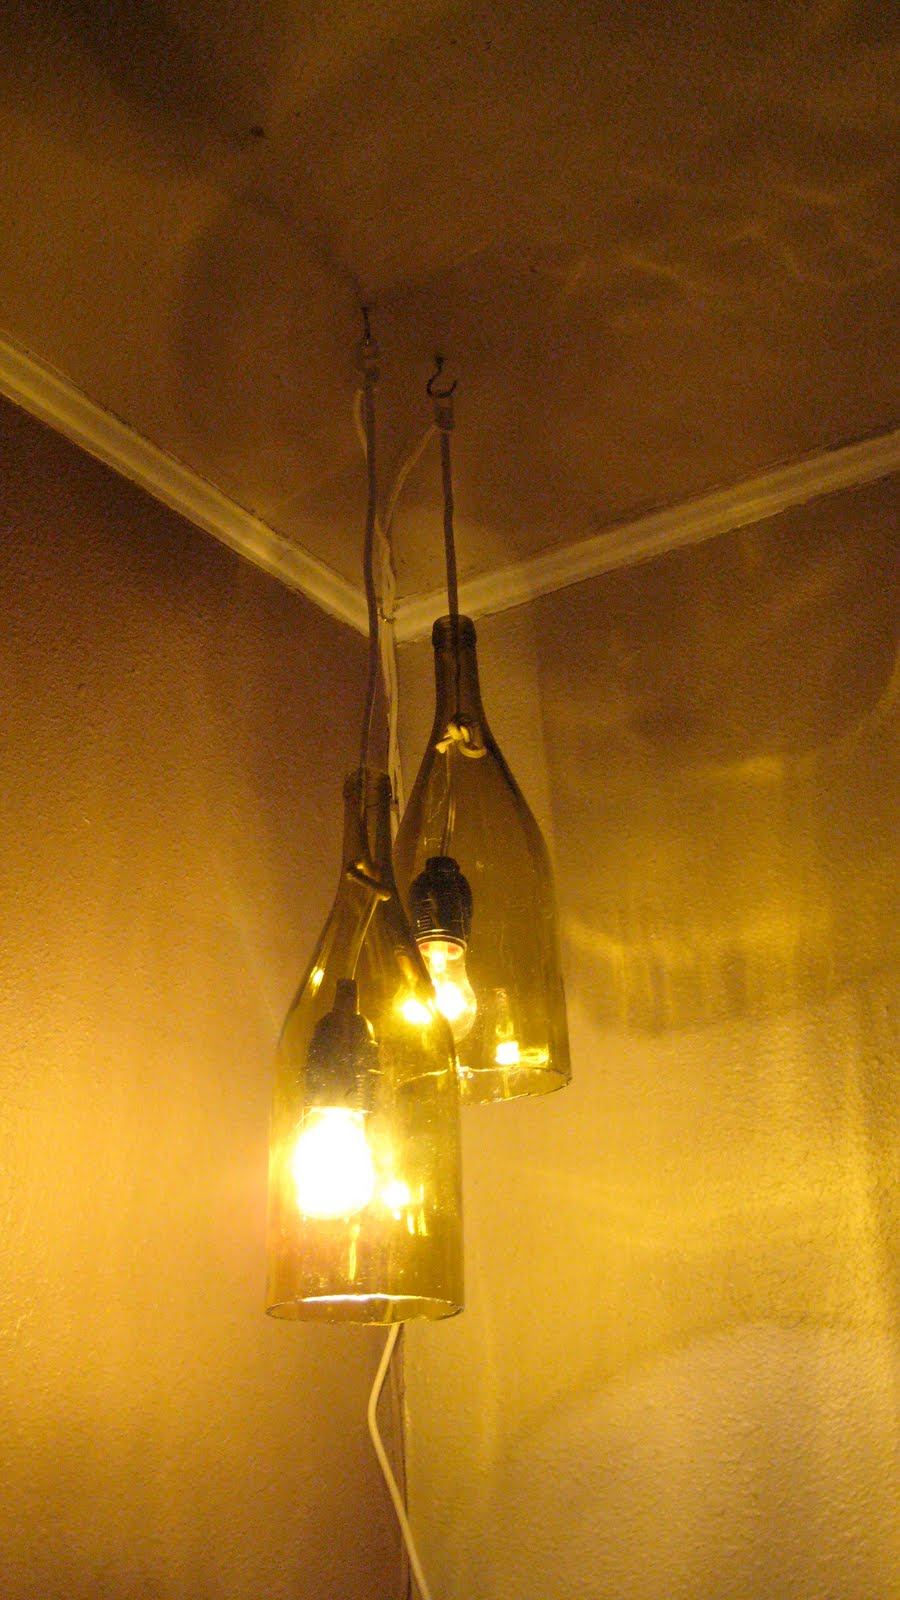 Remodelaholic how to make a glass wine bottle pendant light diy - Wine bottle pendant light ...